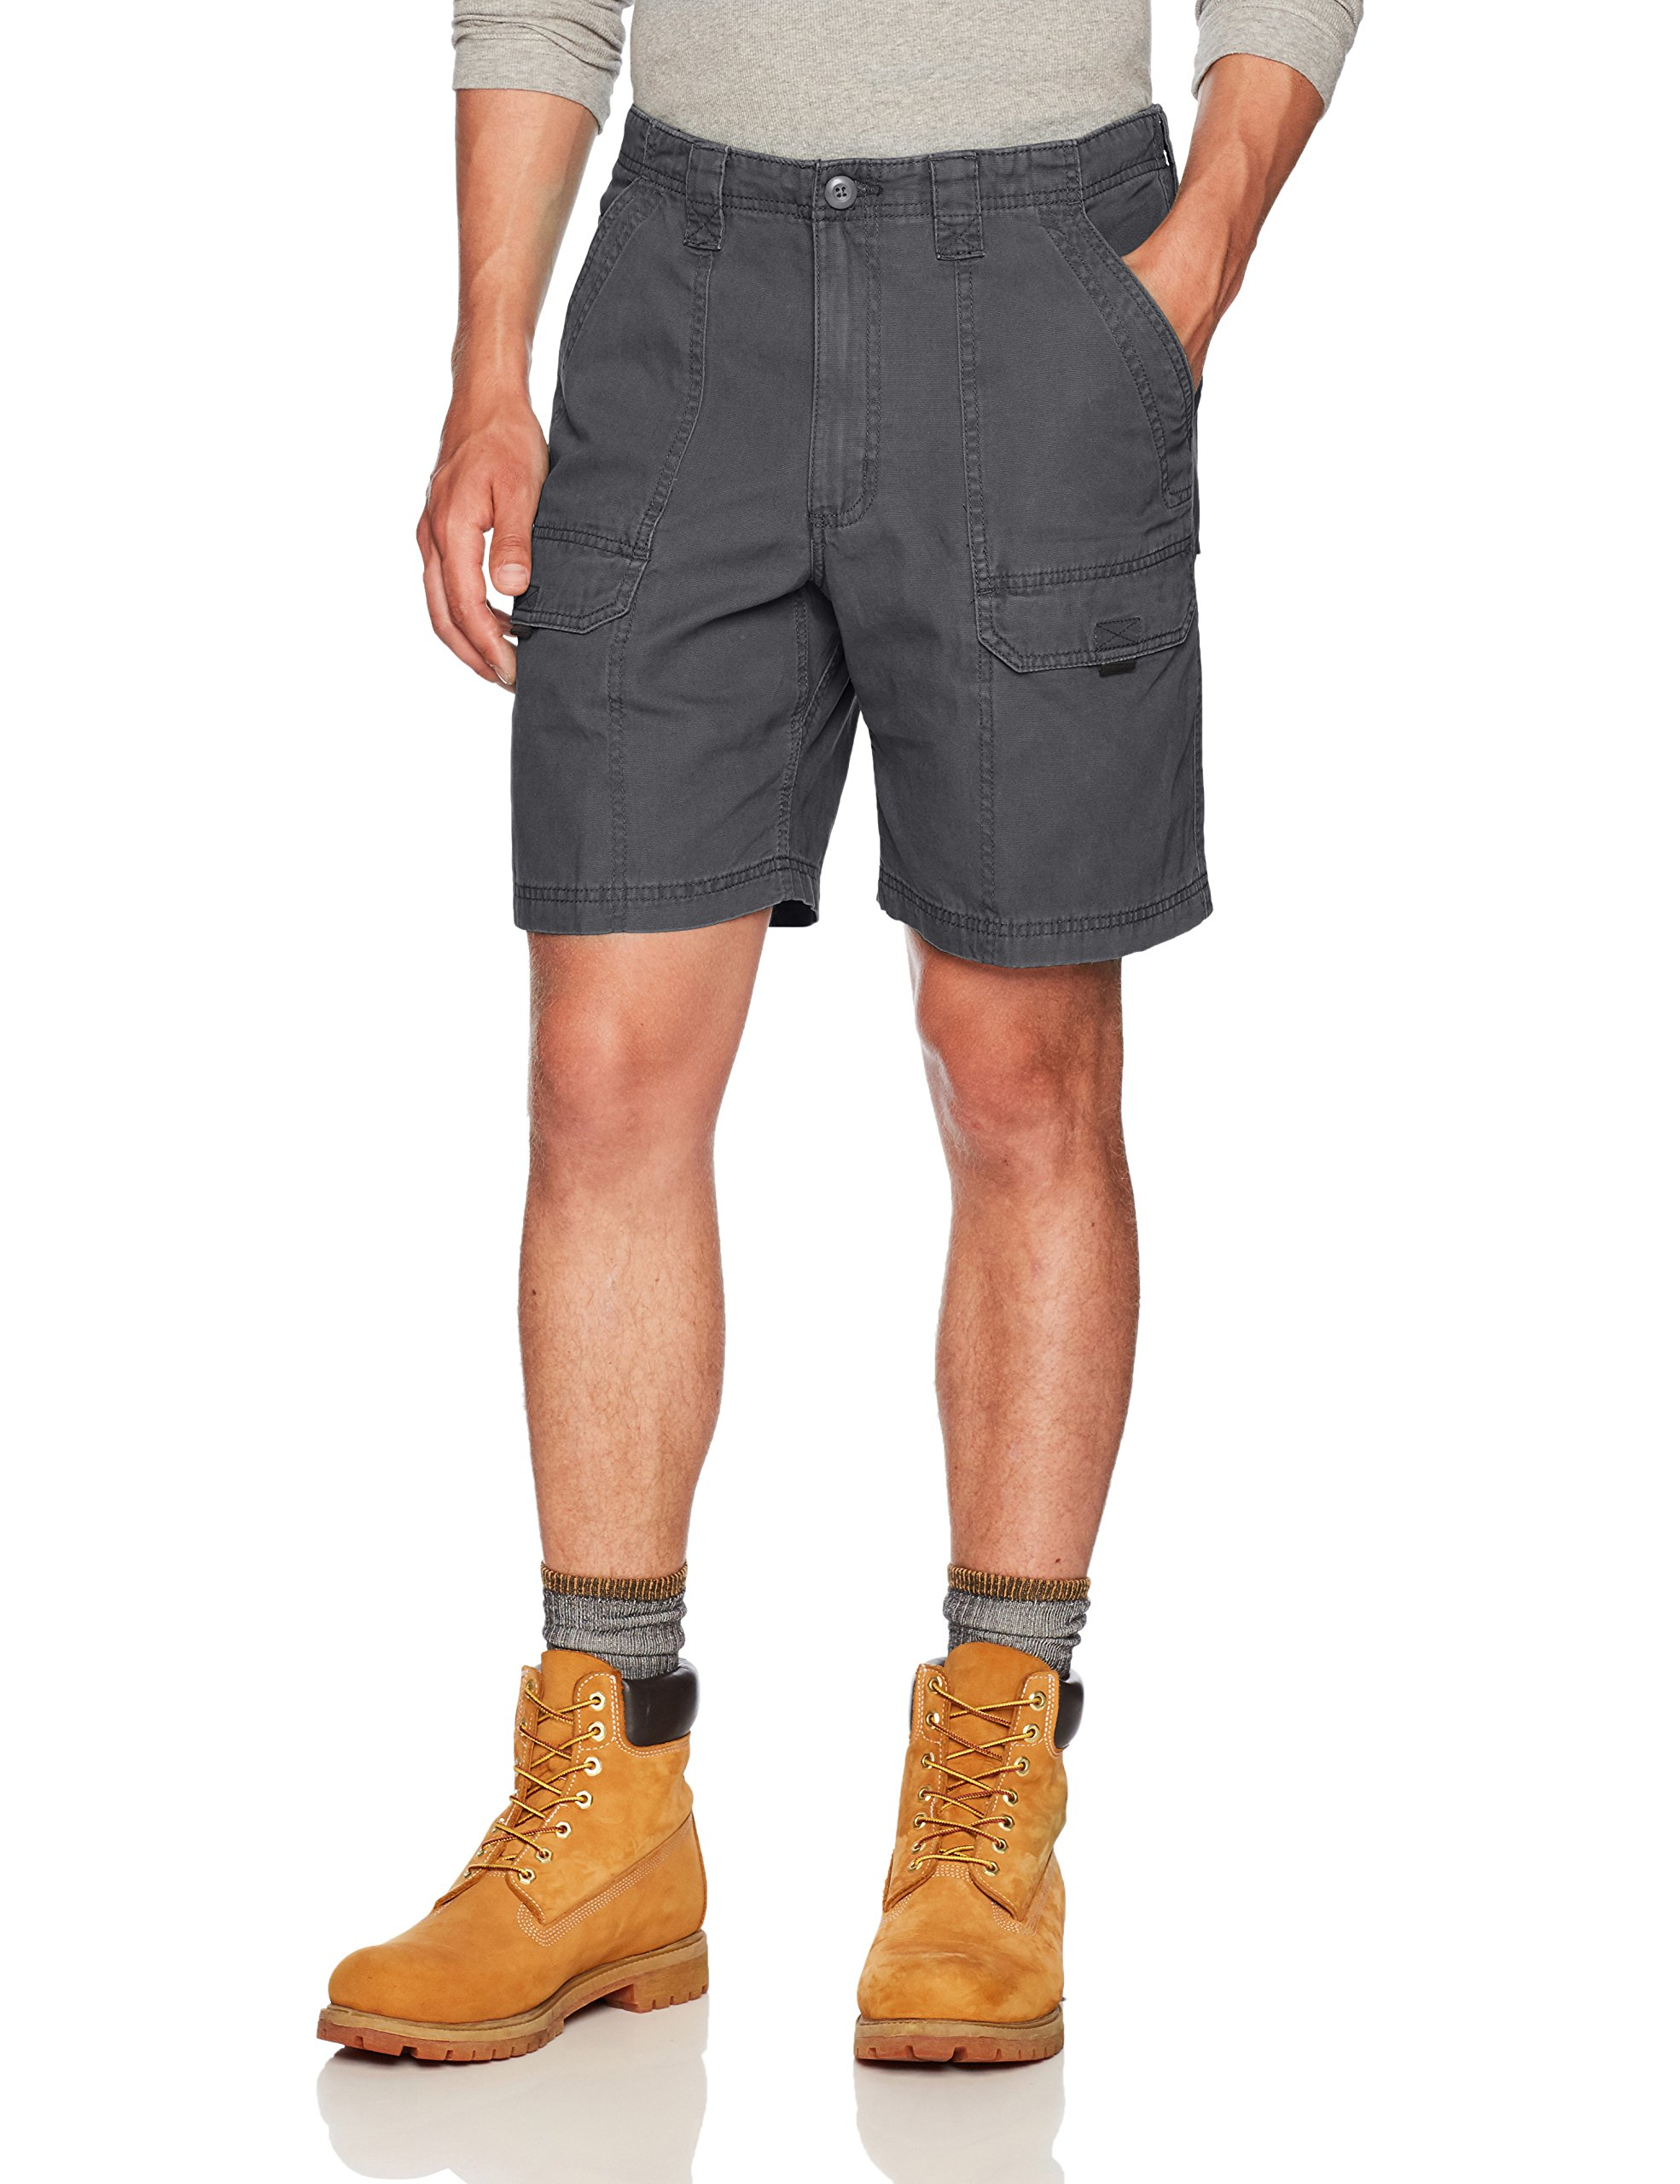 Wrangler Authentics Men's Utility Hiker Short,Anthracite,34